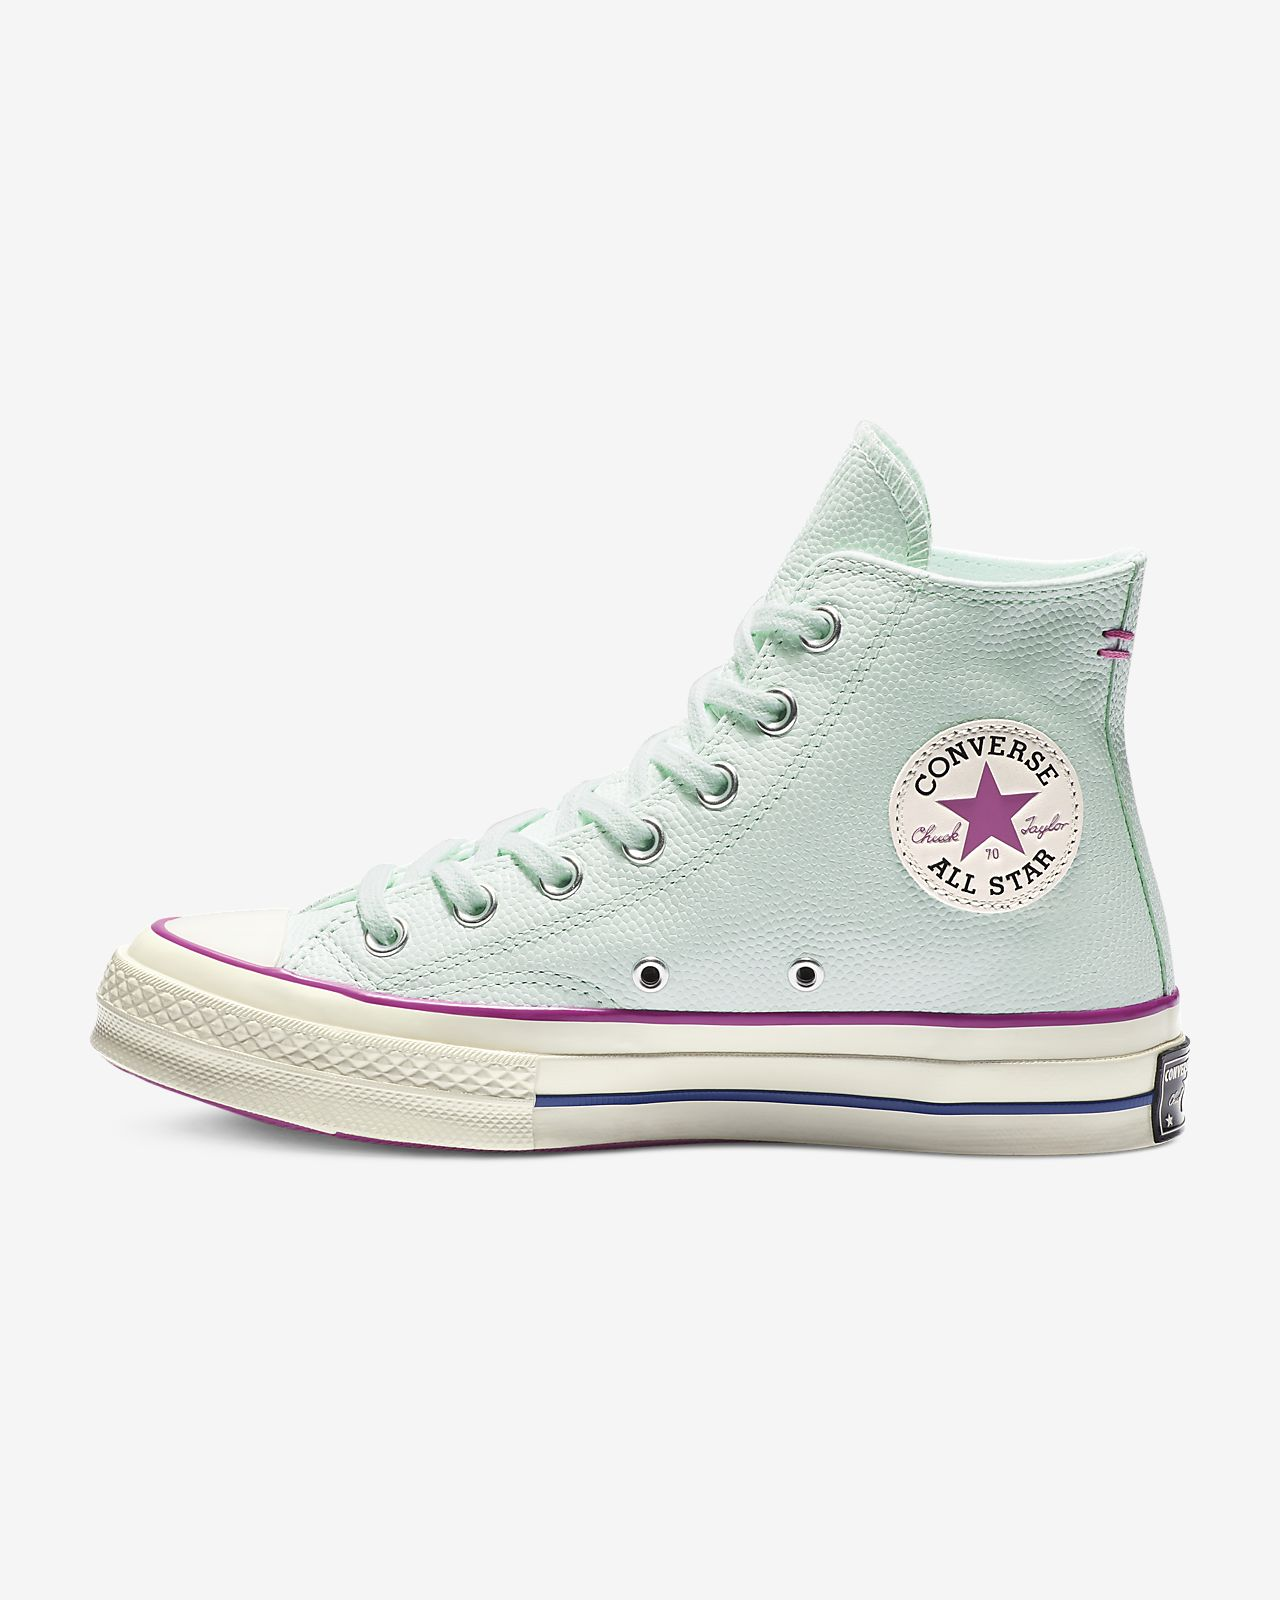 Chuck 70 Pastel High Top Womens Shoe